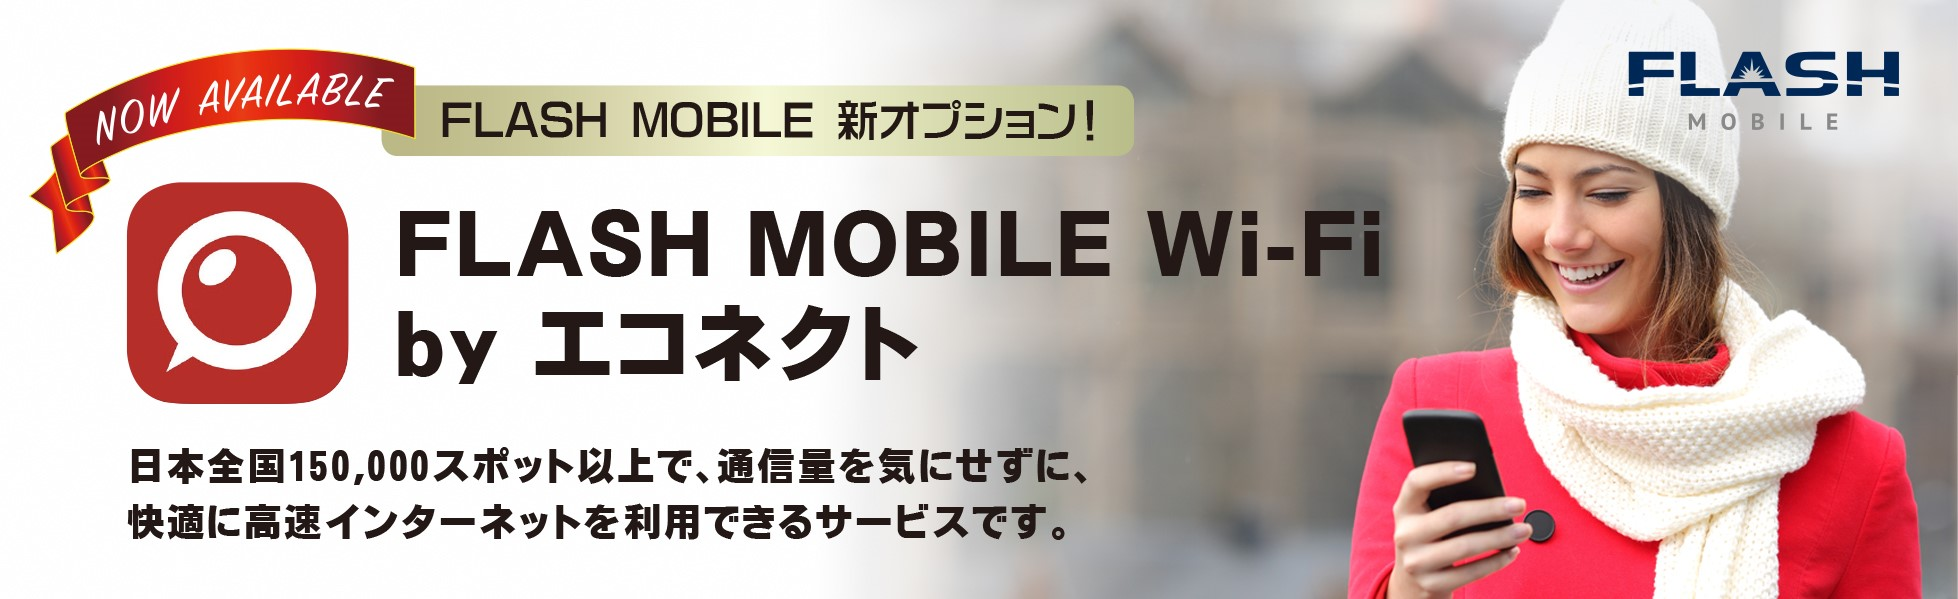 FLASH MOBILE Wi-Fi by Econnect